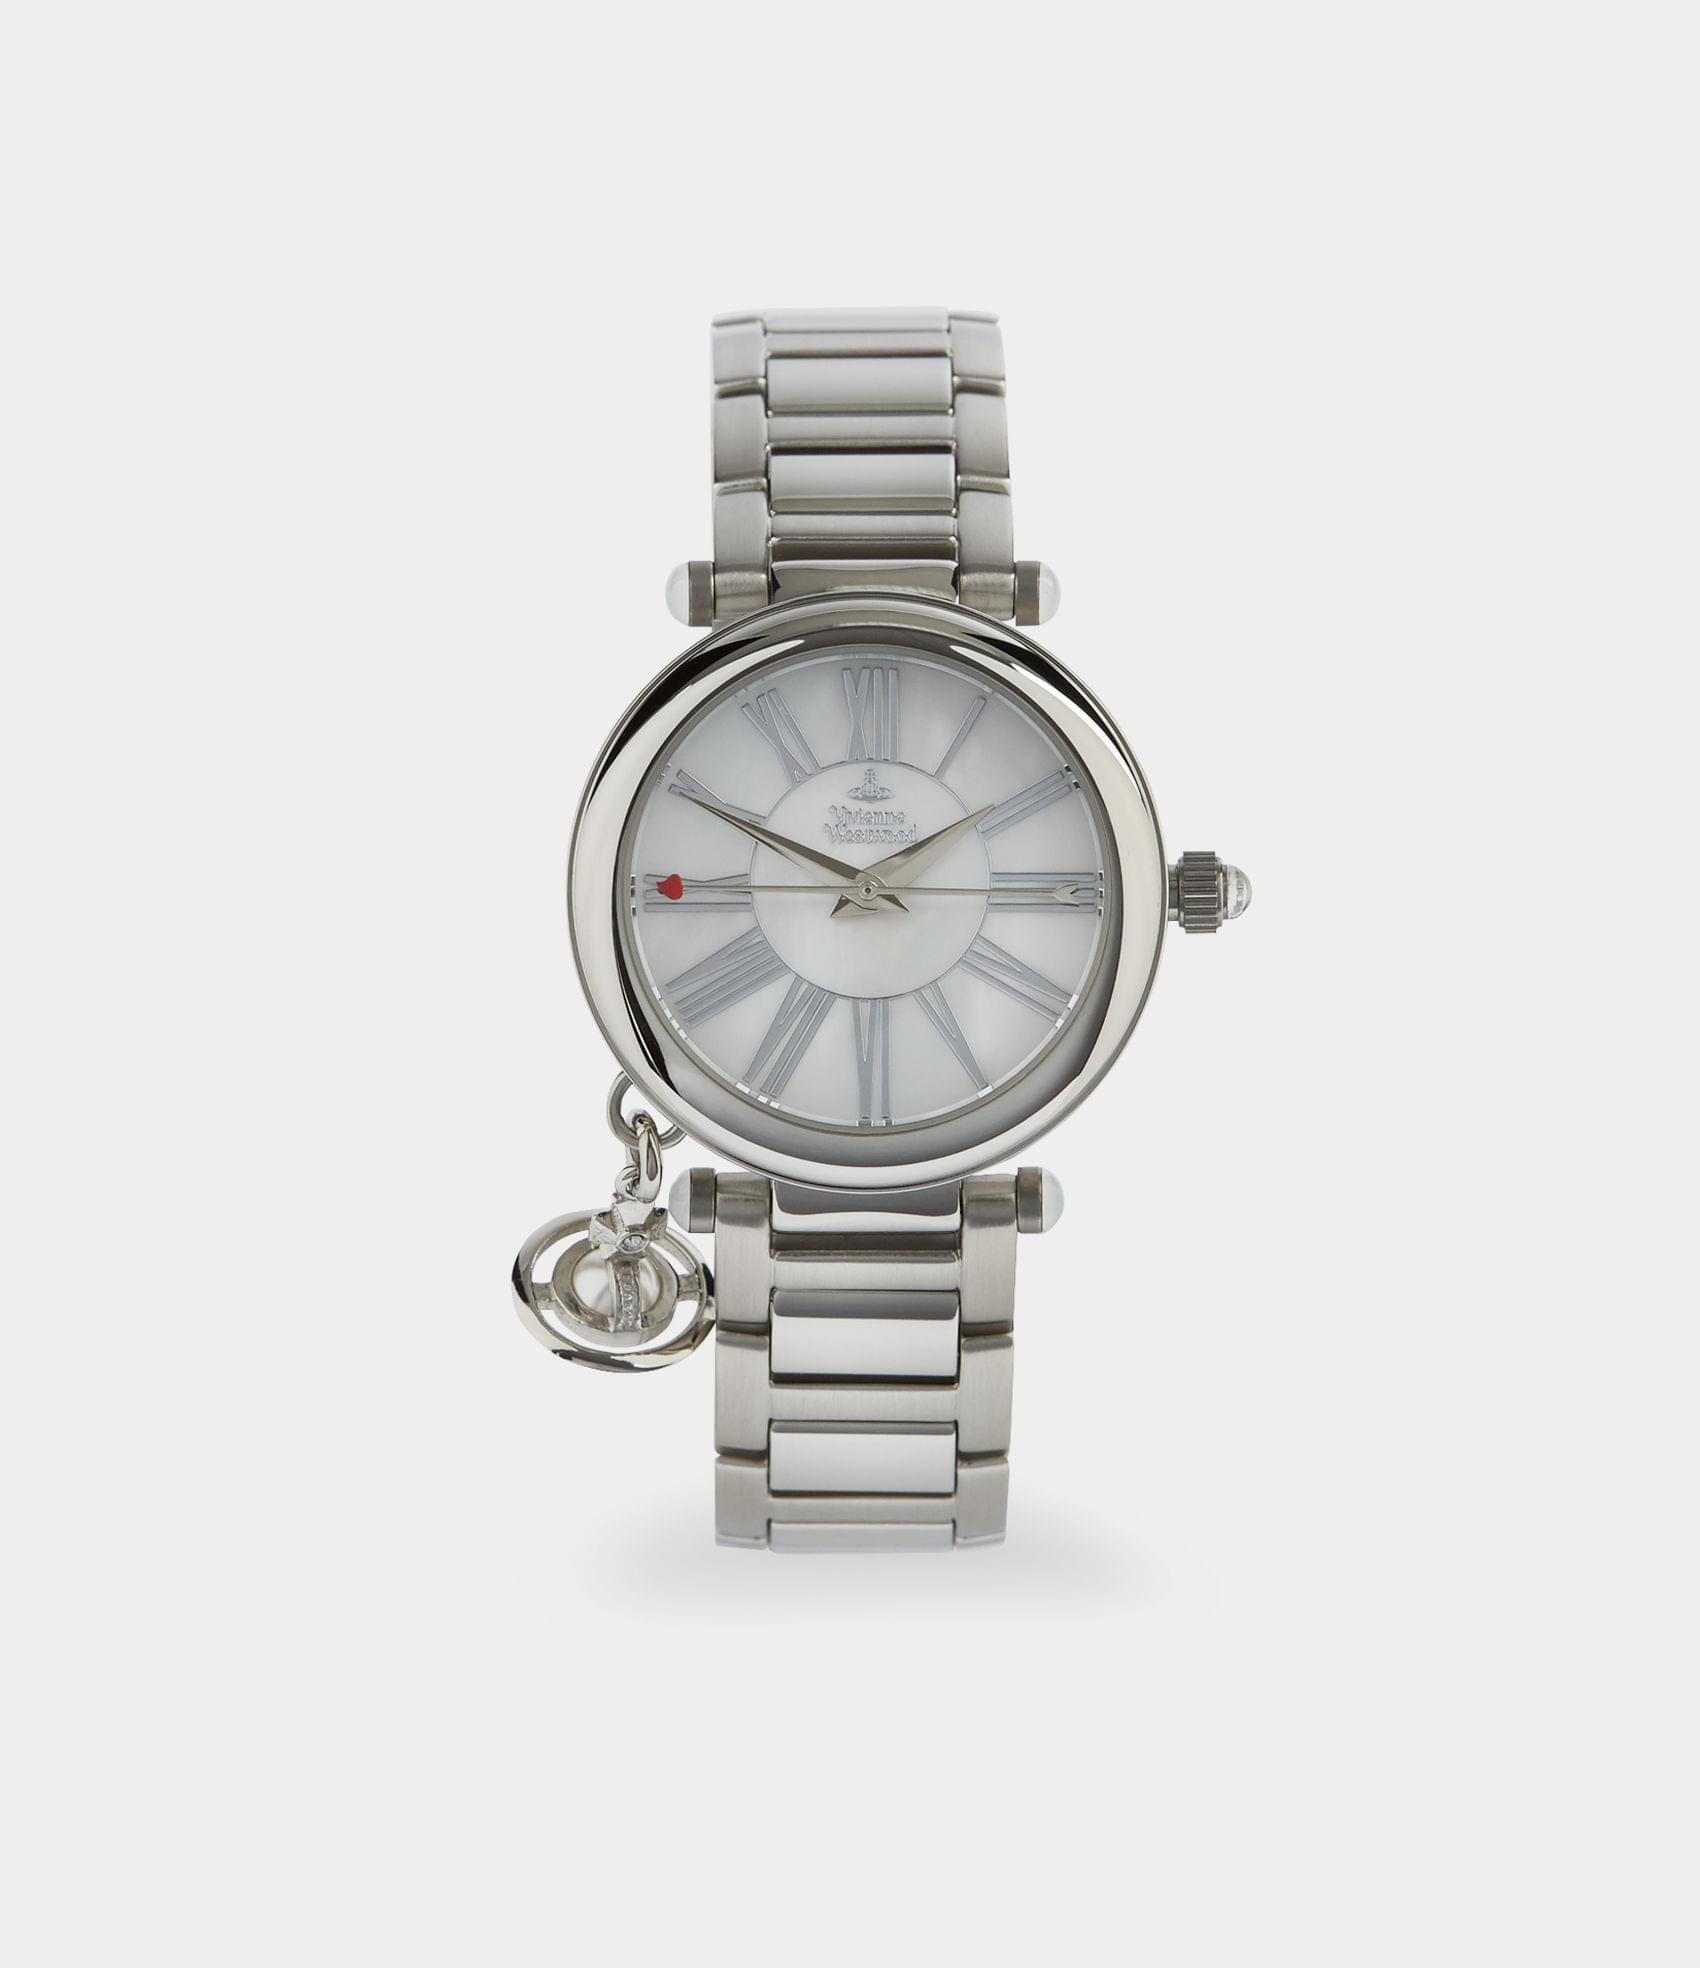 Vivienne Westwood MOTHER ORB WATCH SILVER